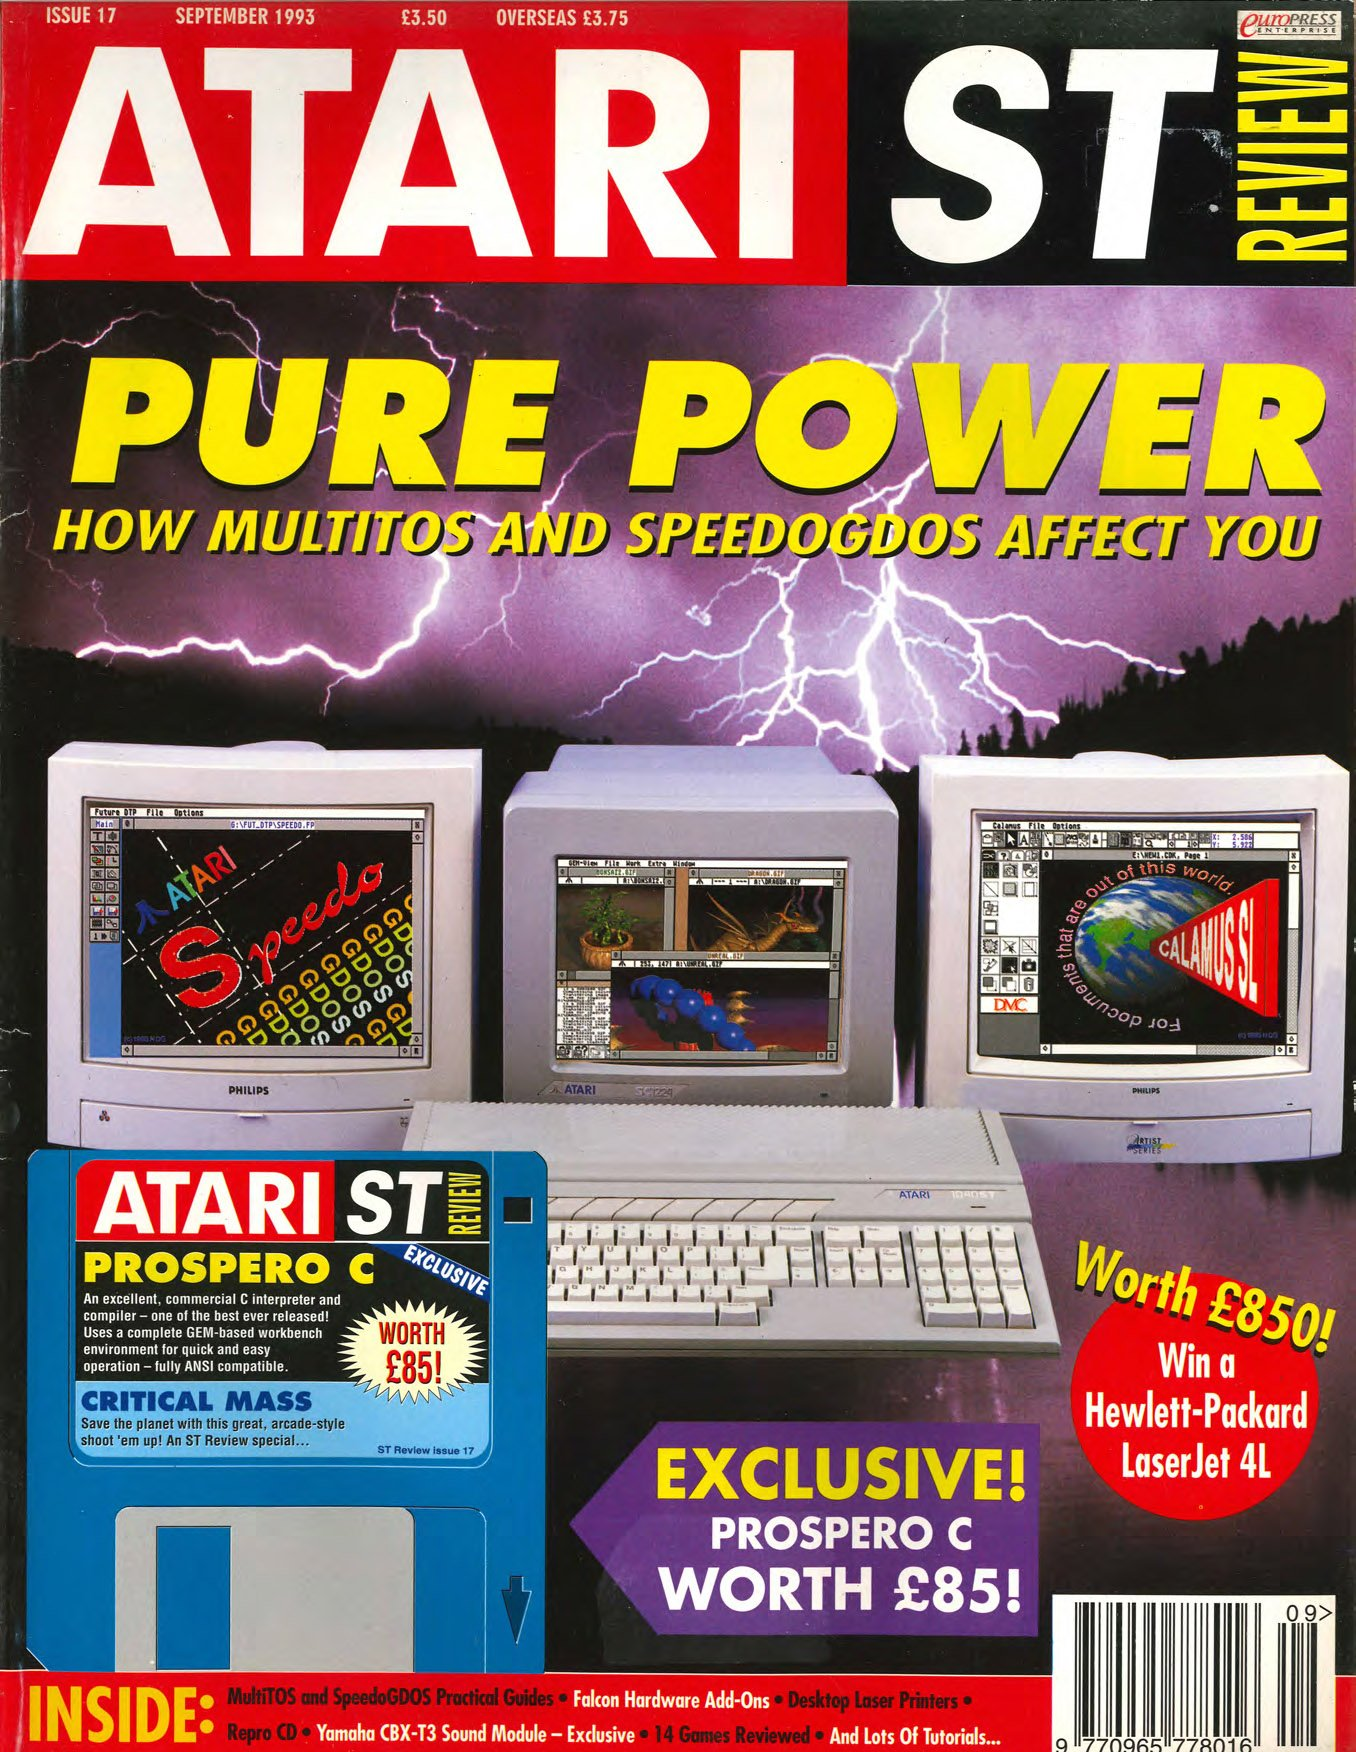 Atari ST Review Issue 17 (September 1993)